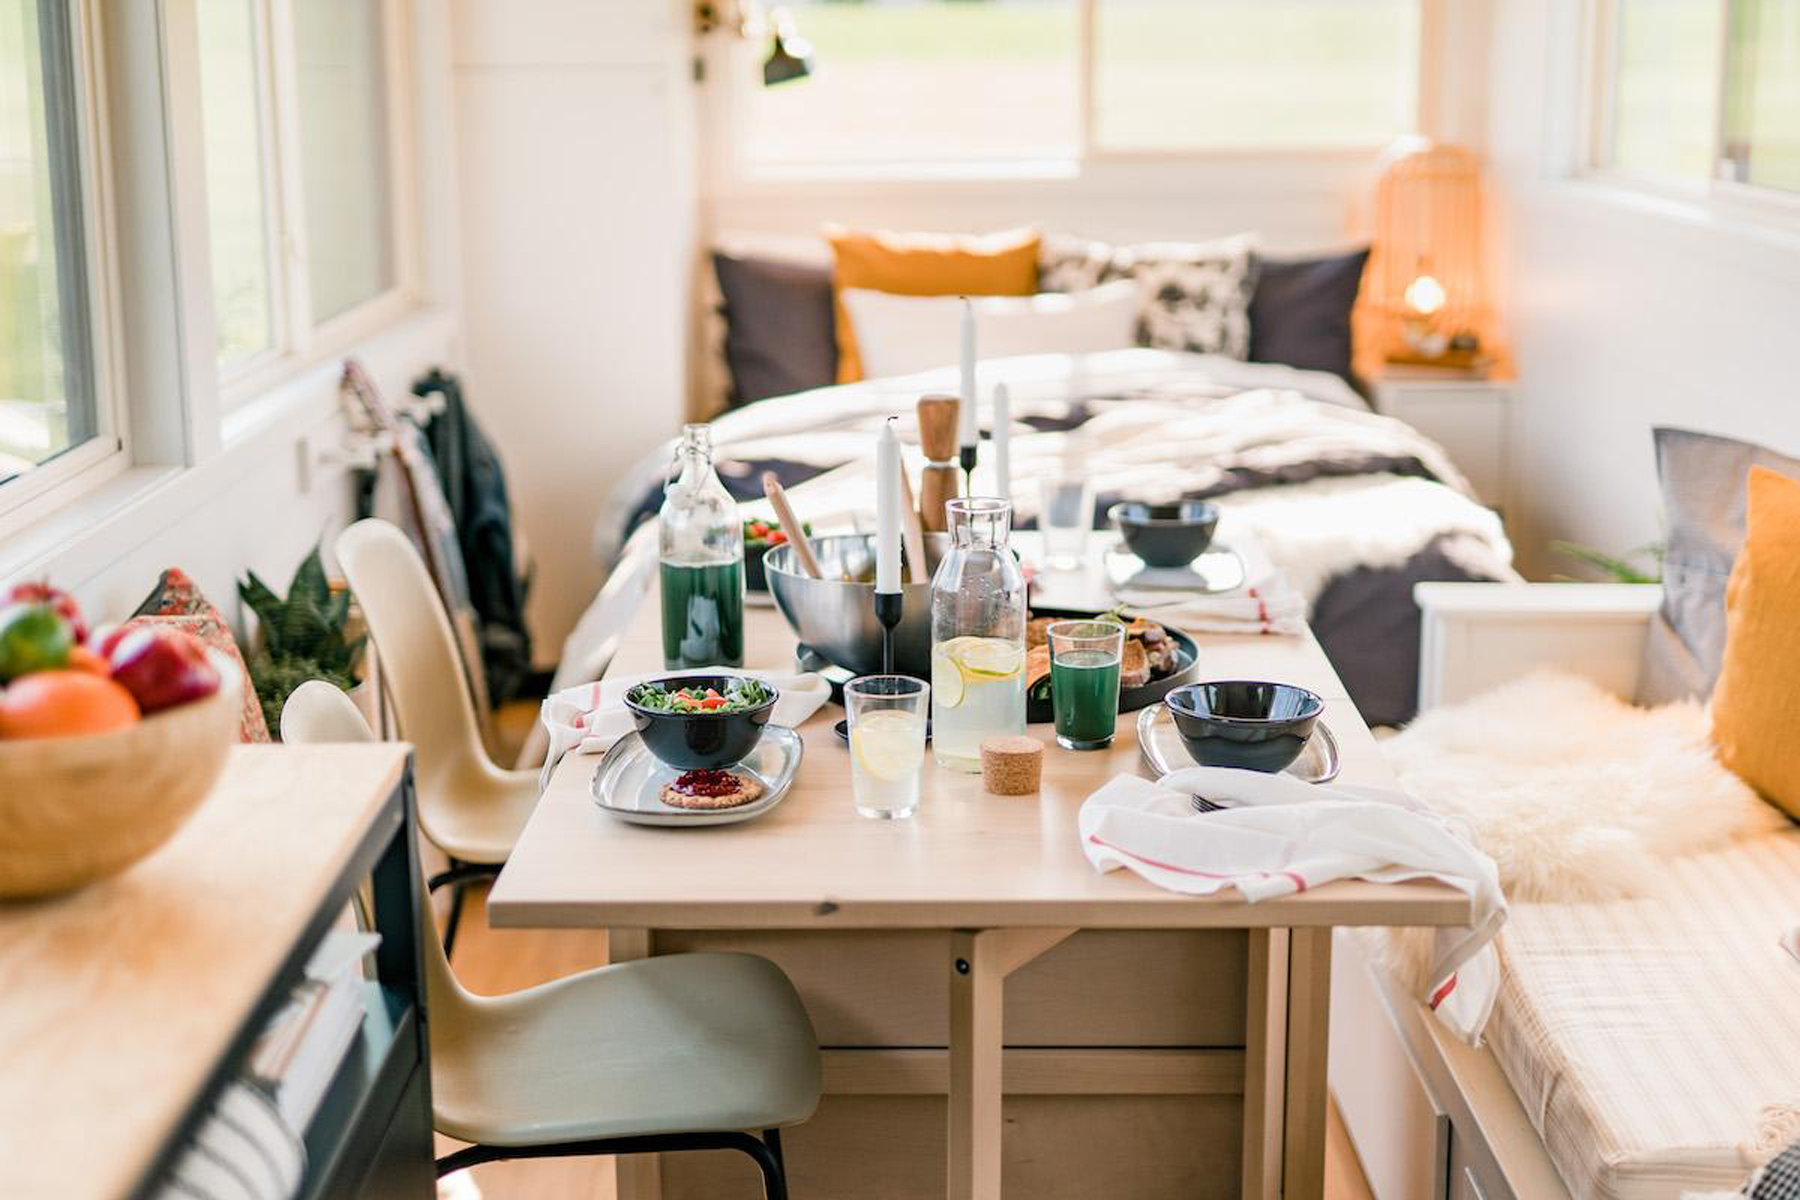 IKEA's Tiny Home view of dining table and bed